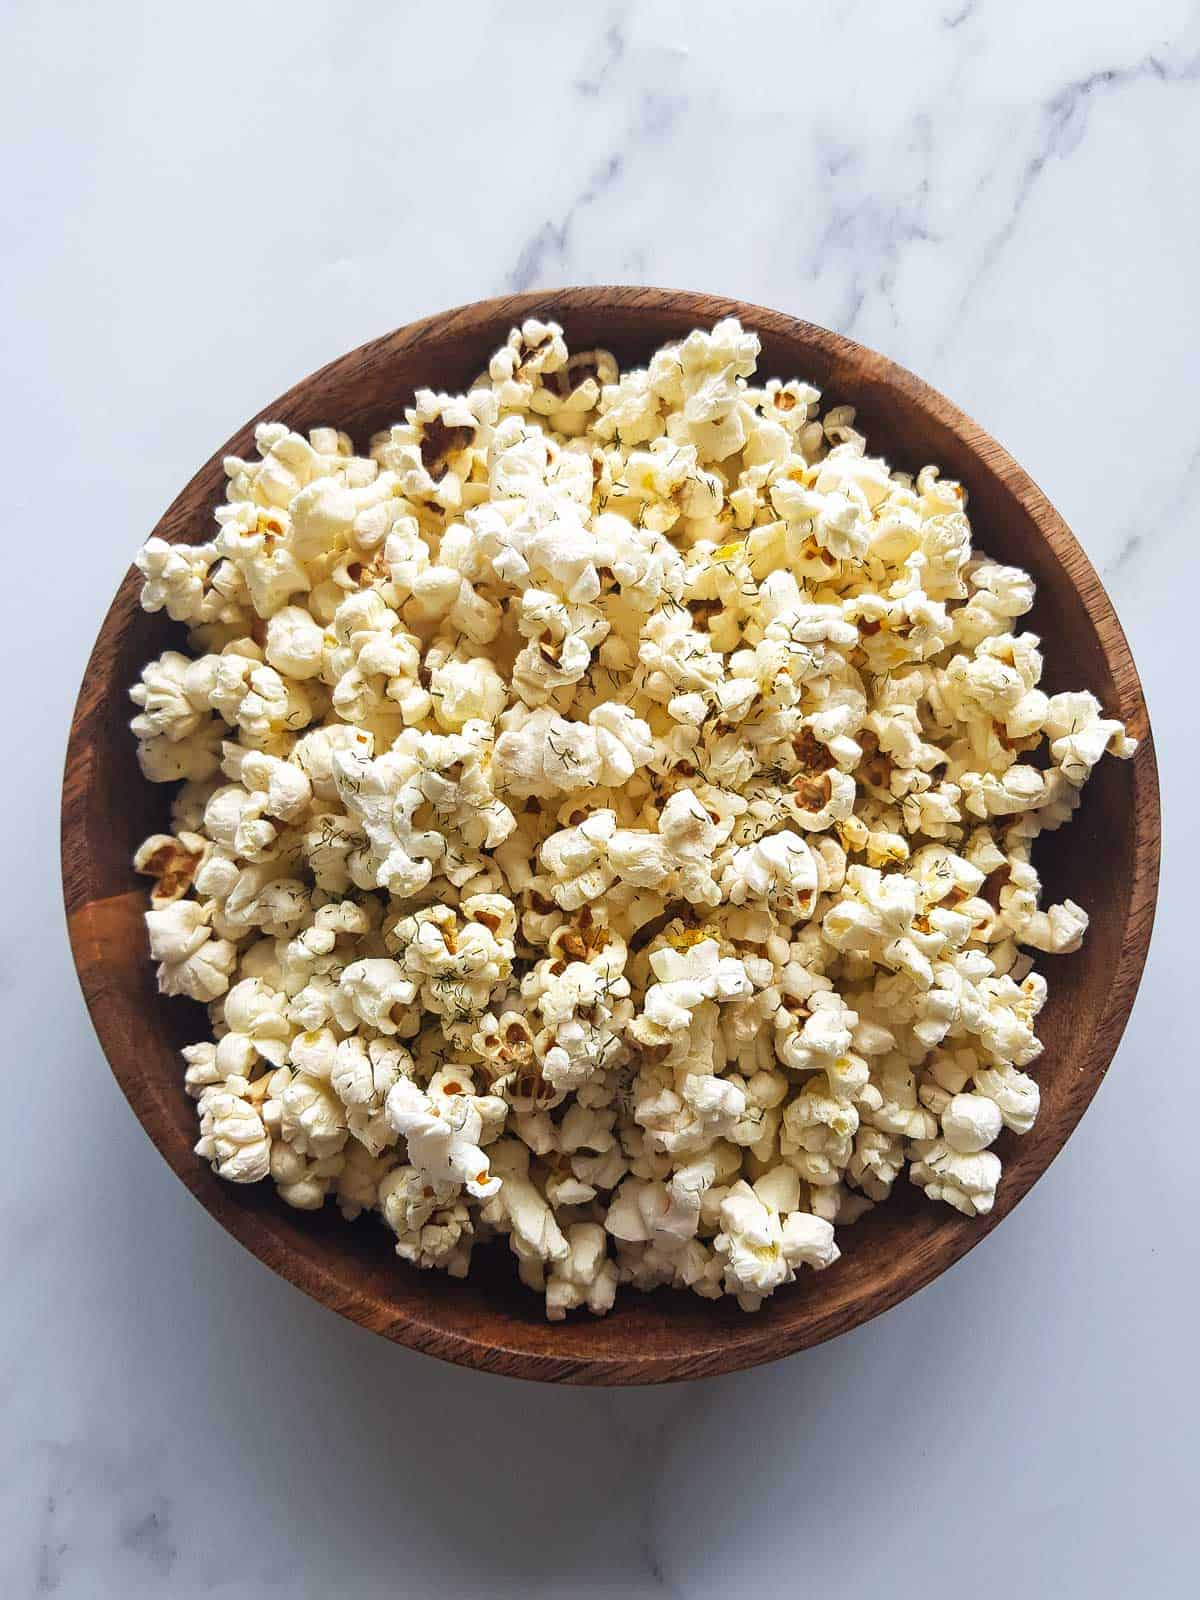 A bowl of dill pickle popcorn.